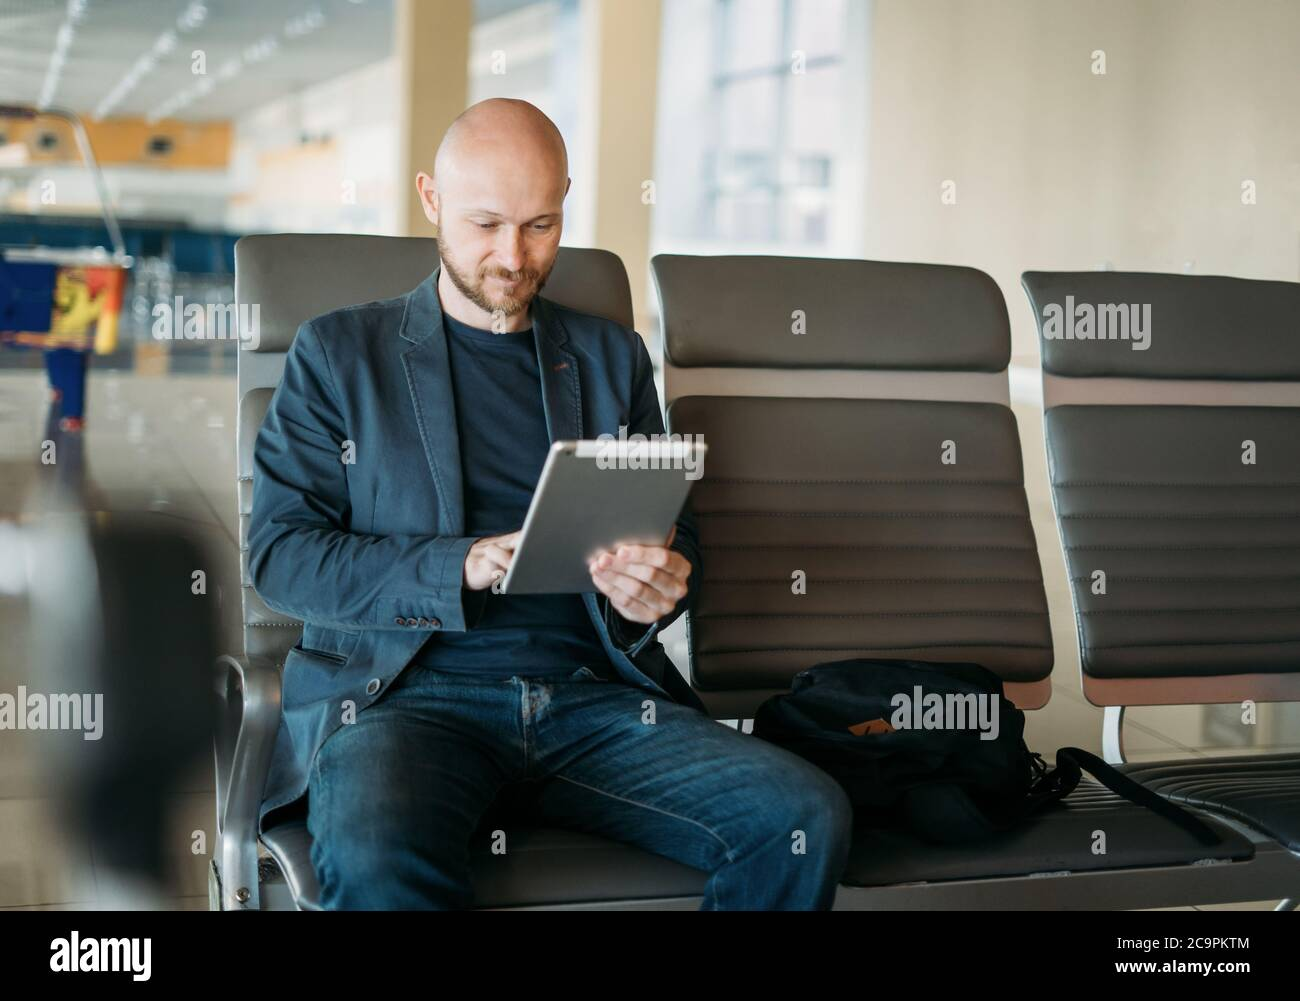 Handsome adult bald bearded man businessman in suit using tablet at airport lounge Stock Photo